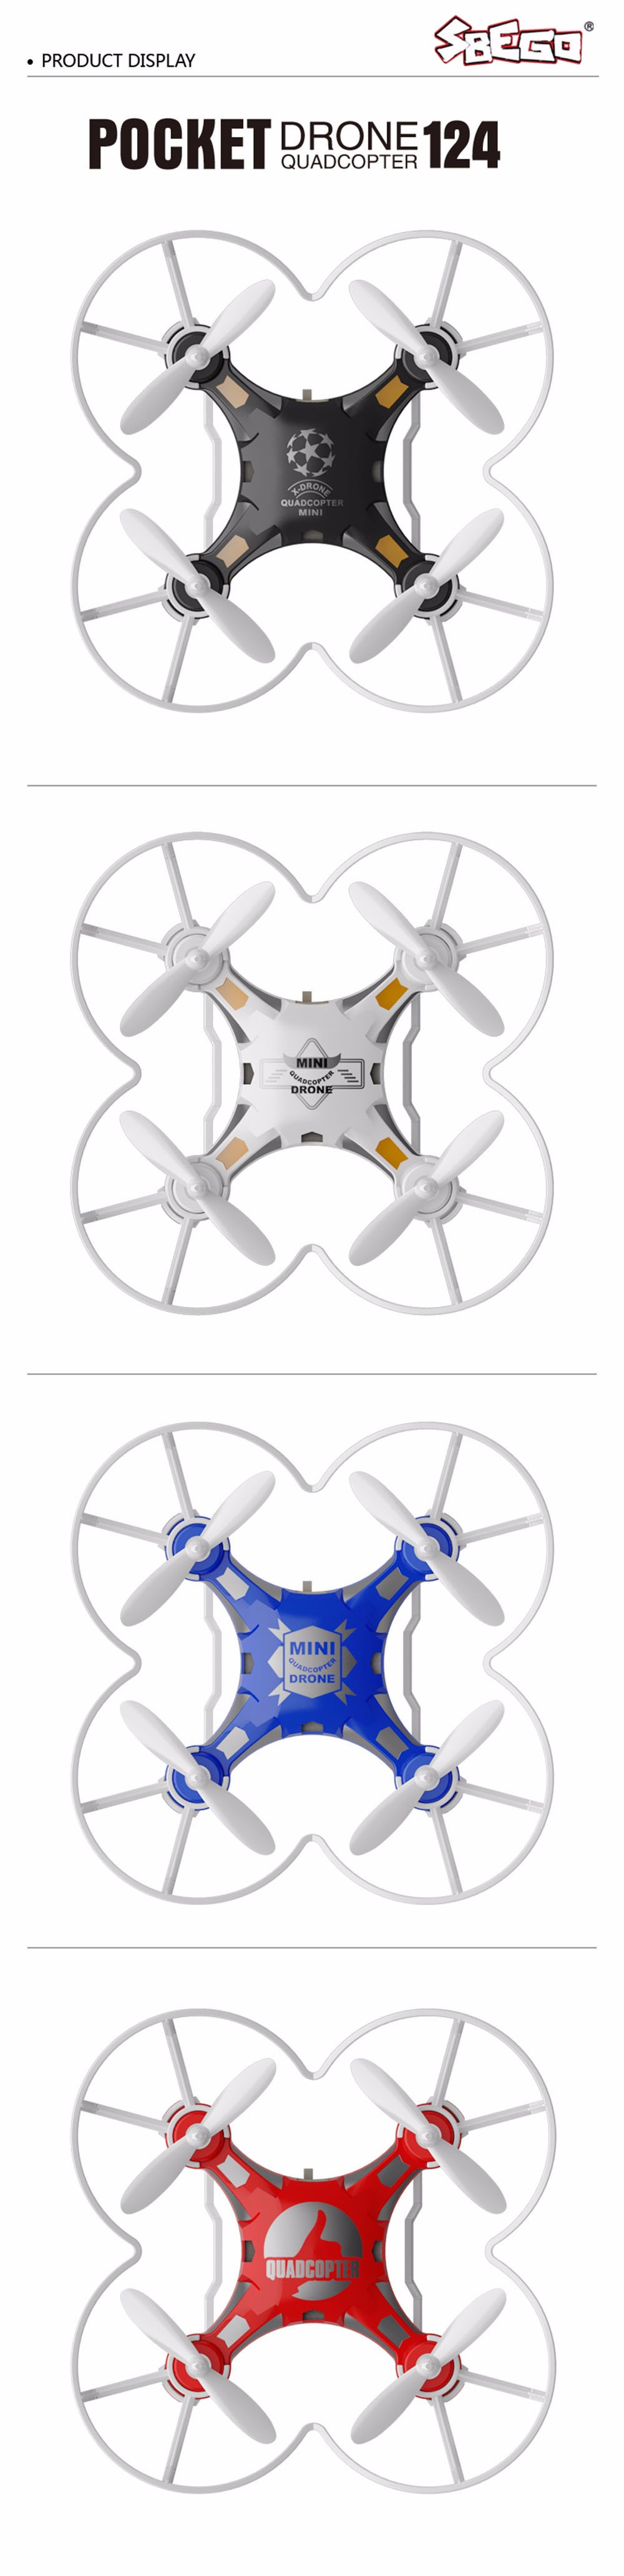 SBEGO FQ777-124 Mini Drone Micro Pocket 4CH 6Axis Gyro Switchable Controller RC Helicopter Kids Toys VS JJRC H37 H31 Quadcopter 15